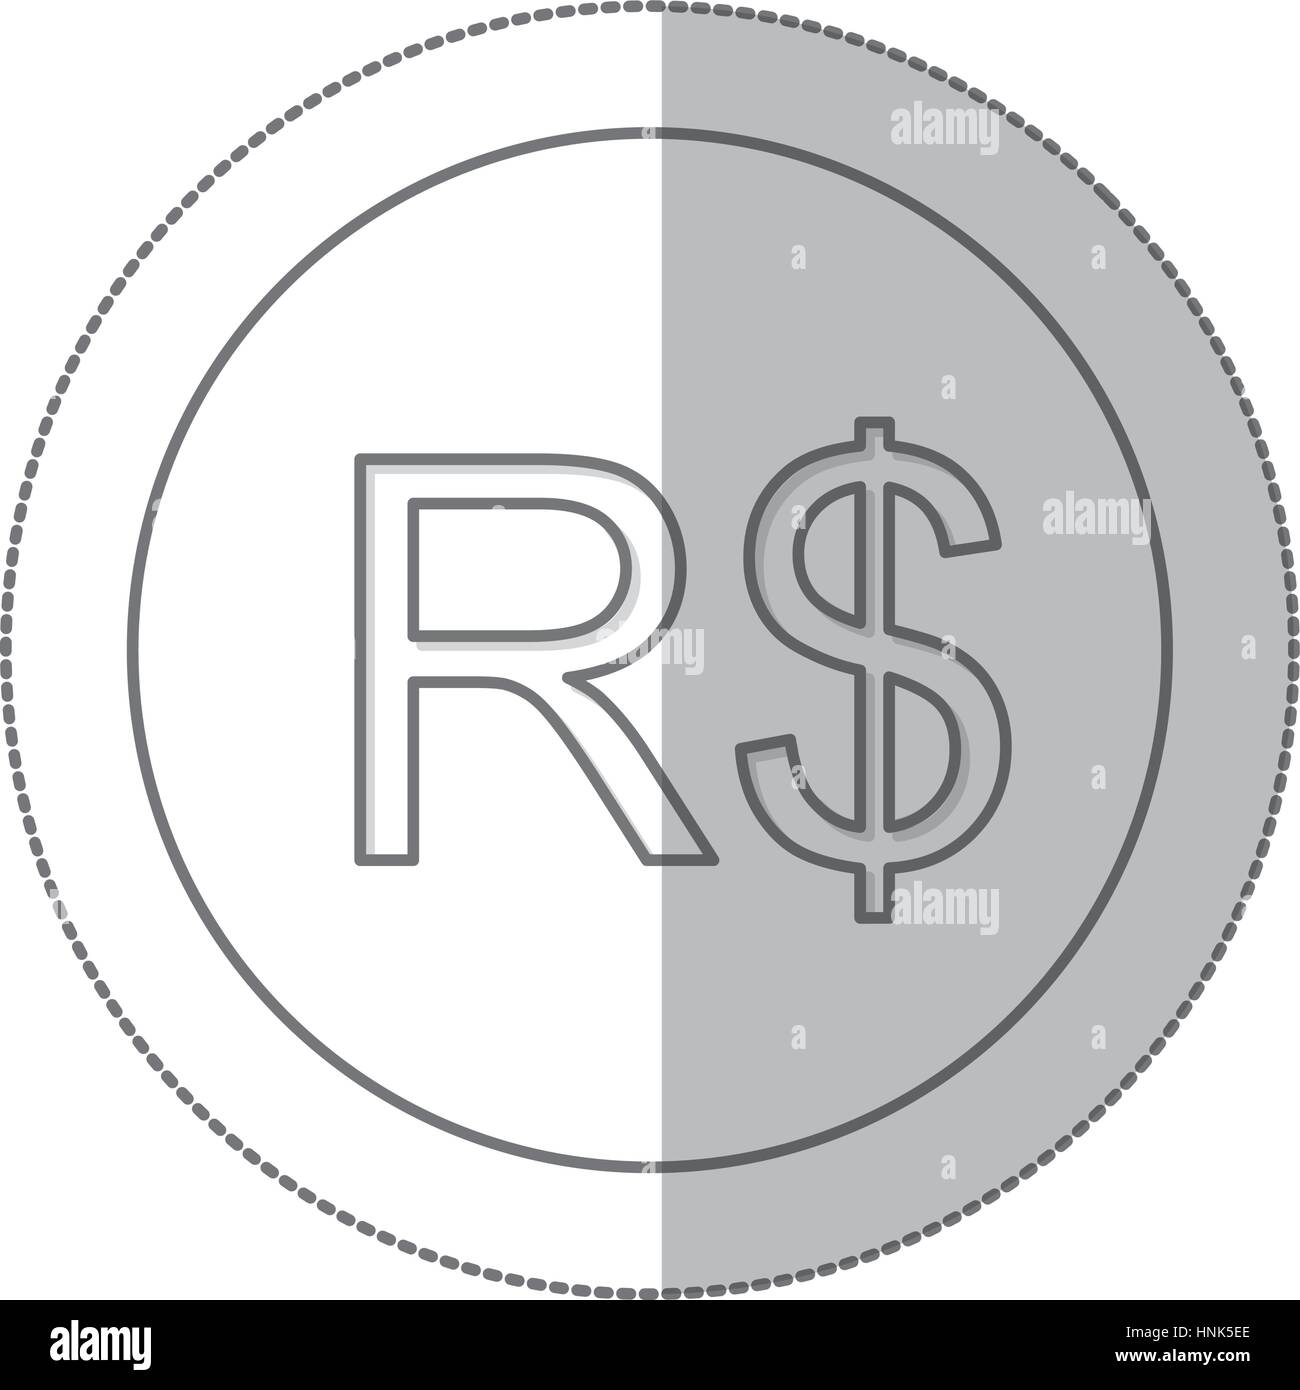 Real brazil currency symbol icon image vector illustration stock real brazil currency symbol icon image vector illustration buycottarizona Images